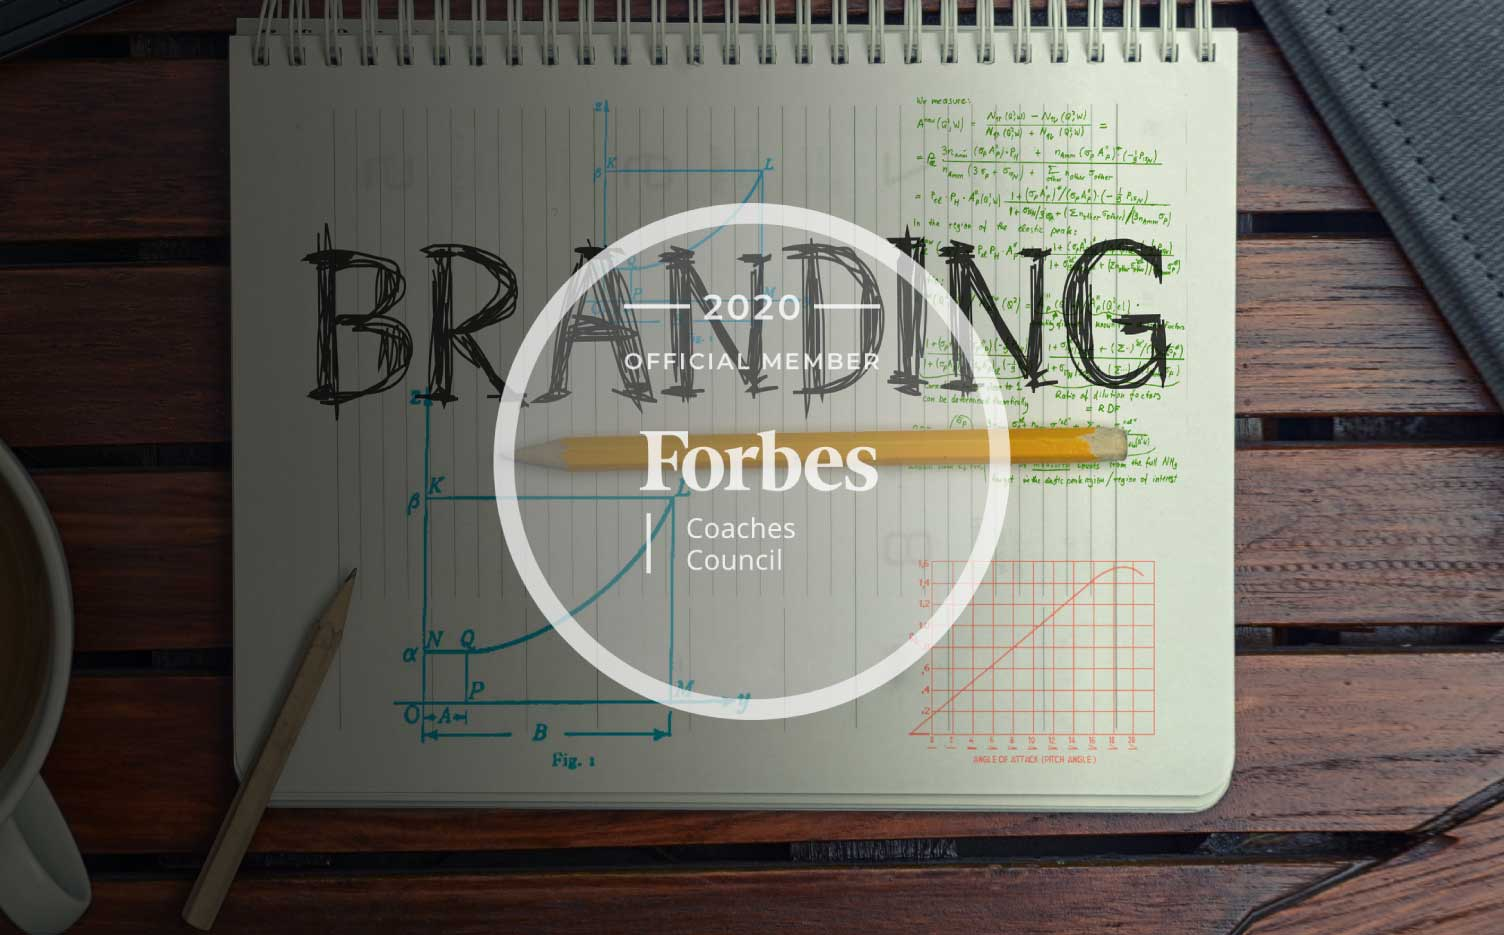 Jon Dwoskin Forbes Coaches Council Article: It's Time To Double Down On Your Brand